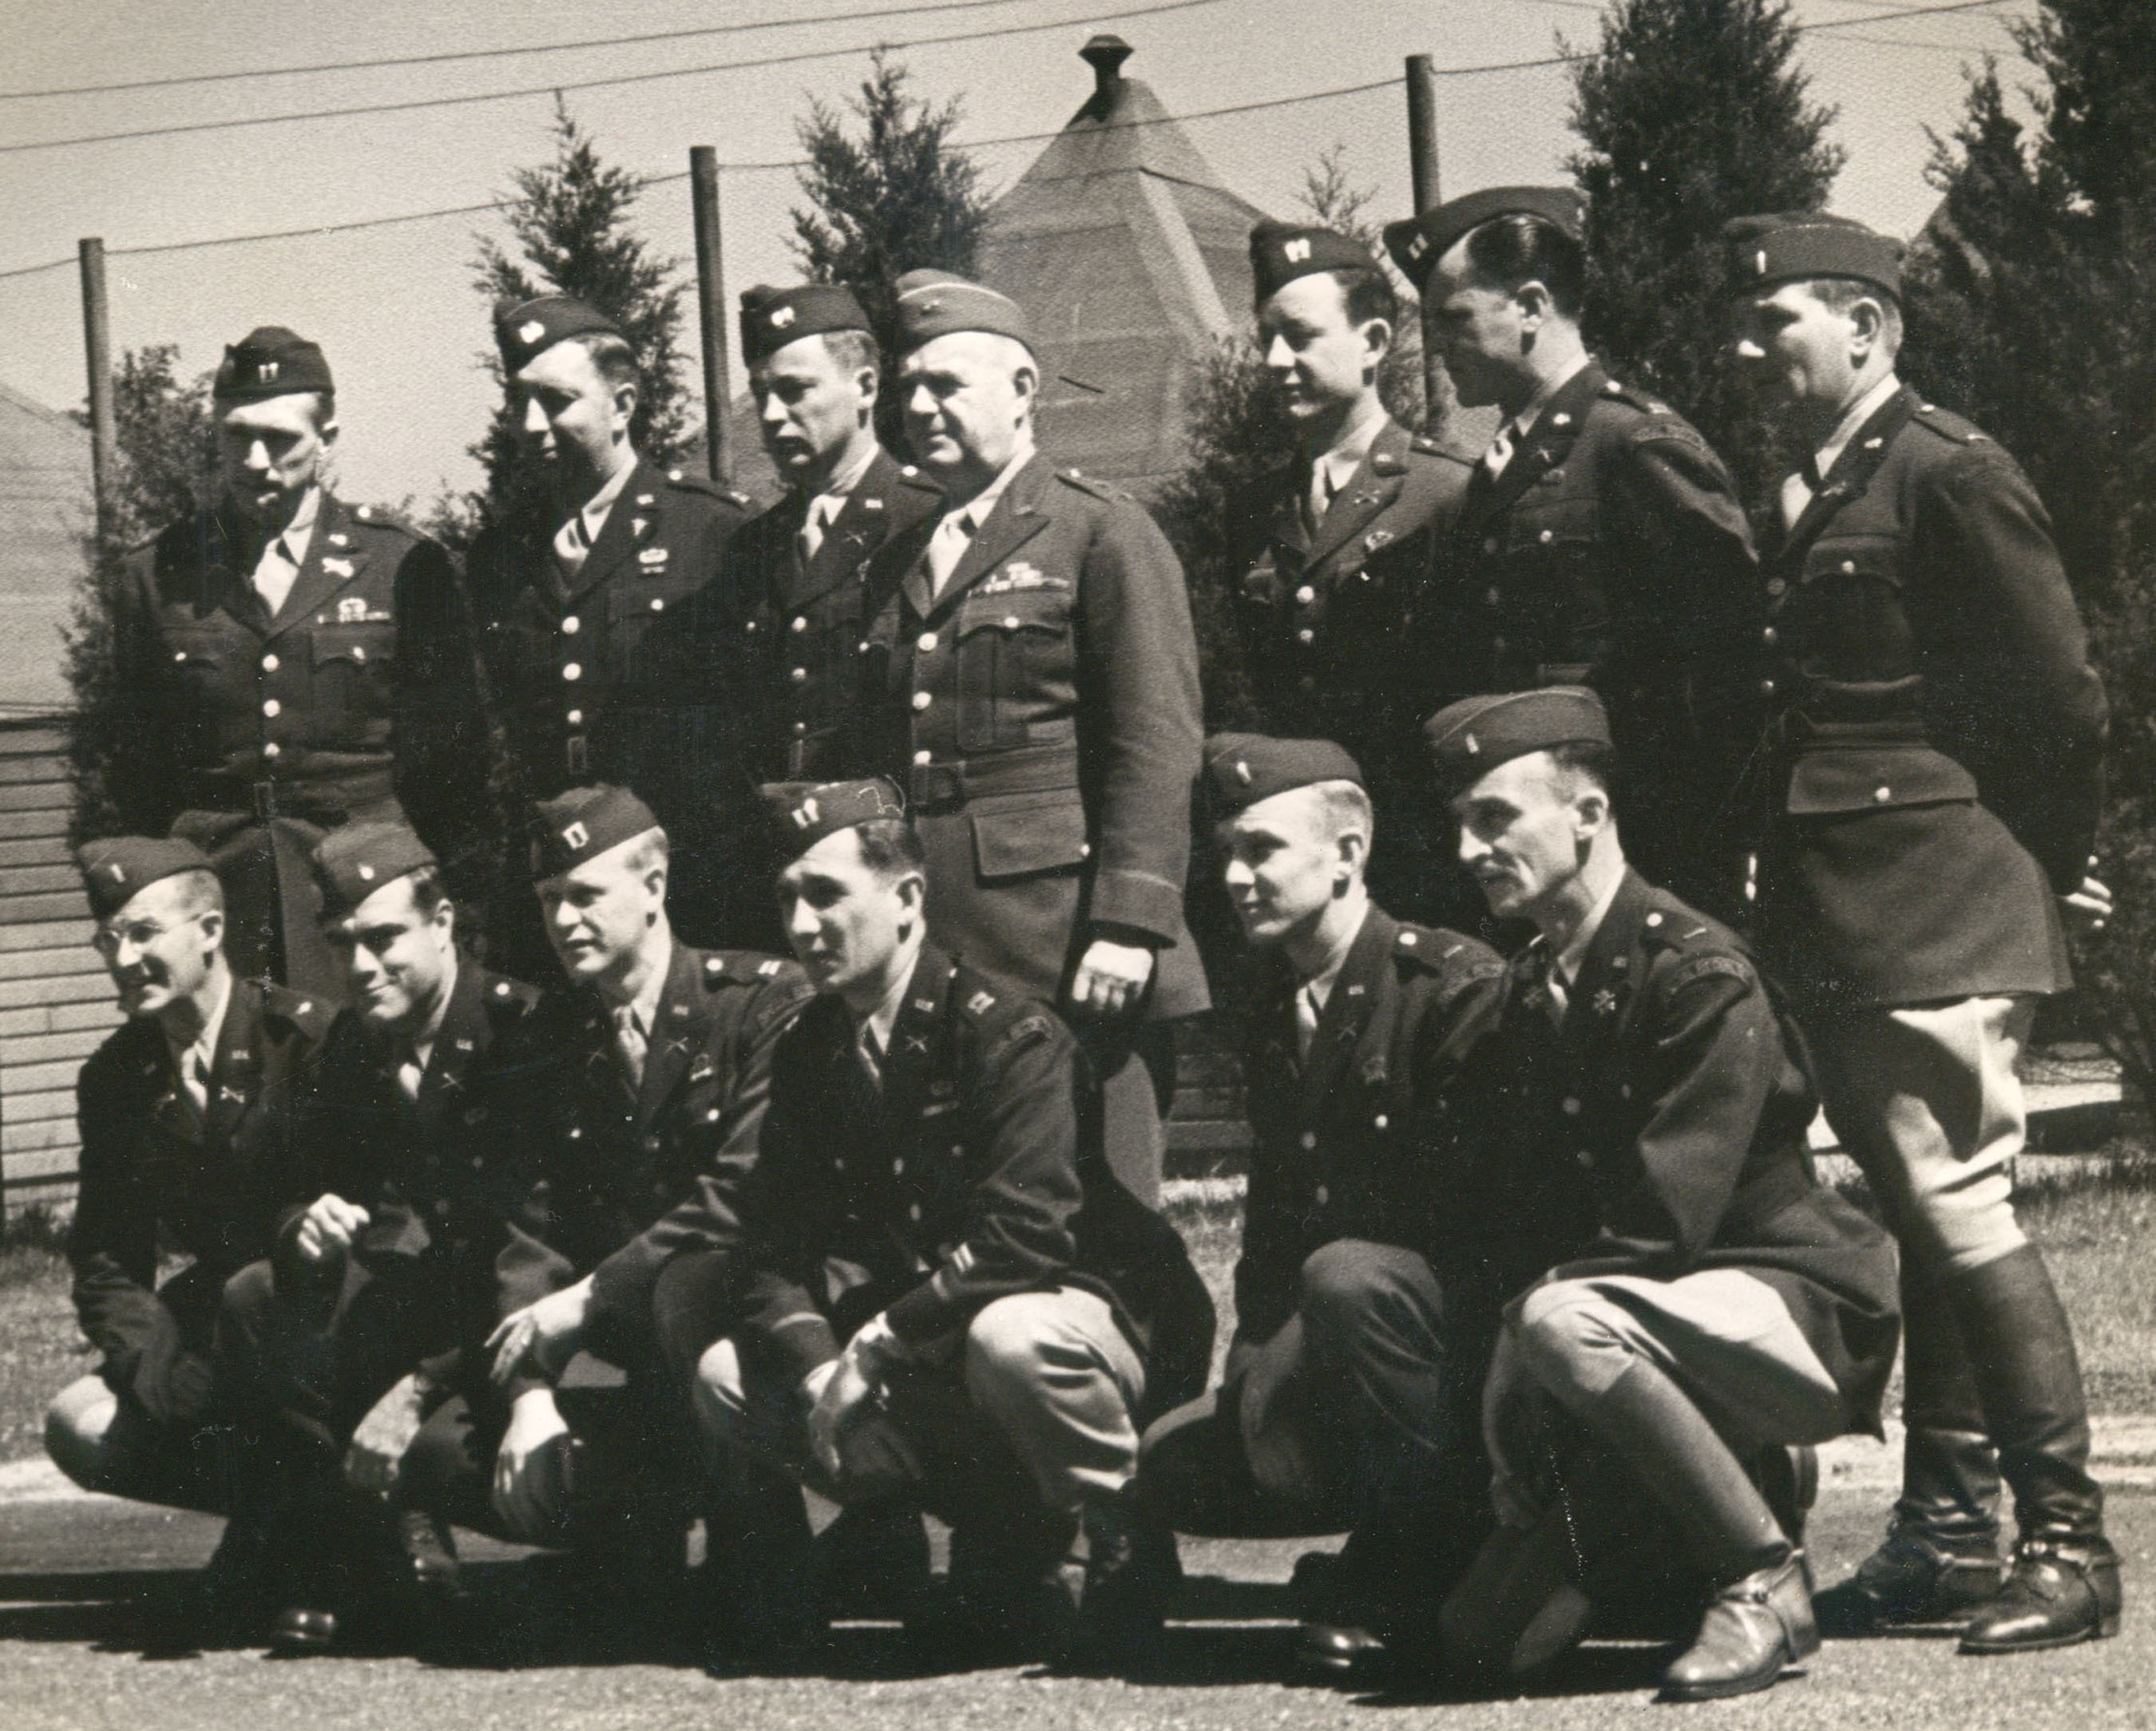 Office of Strategic Services (OSS) Director General William J. Donovan with members of the OSS Operational Groups, forerunners of today's US Special Operations Forces, at Congressional Country Club in Bethesda, Md., which served as an OSS training facility during World War II.